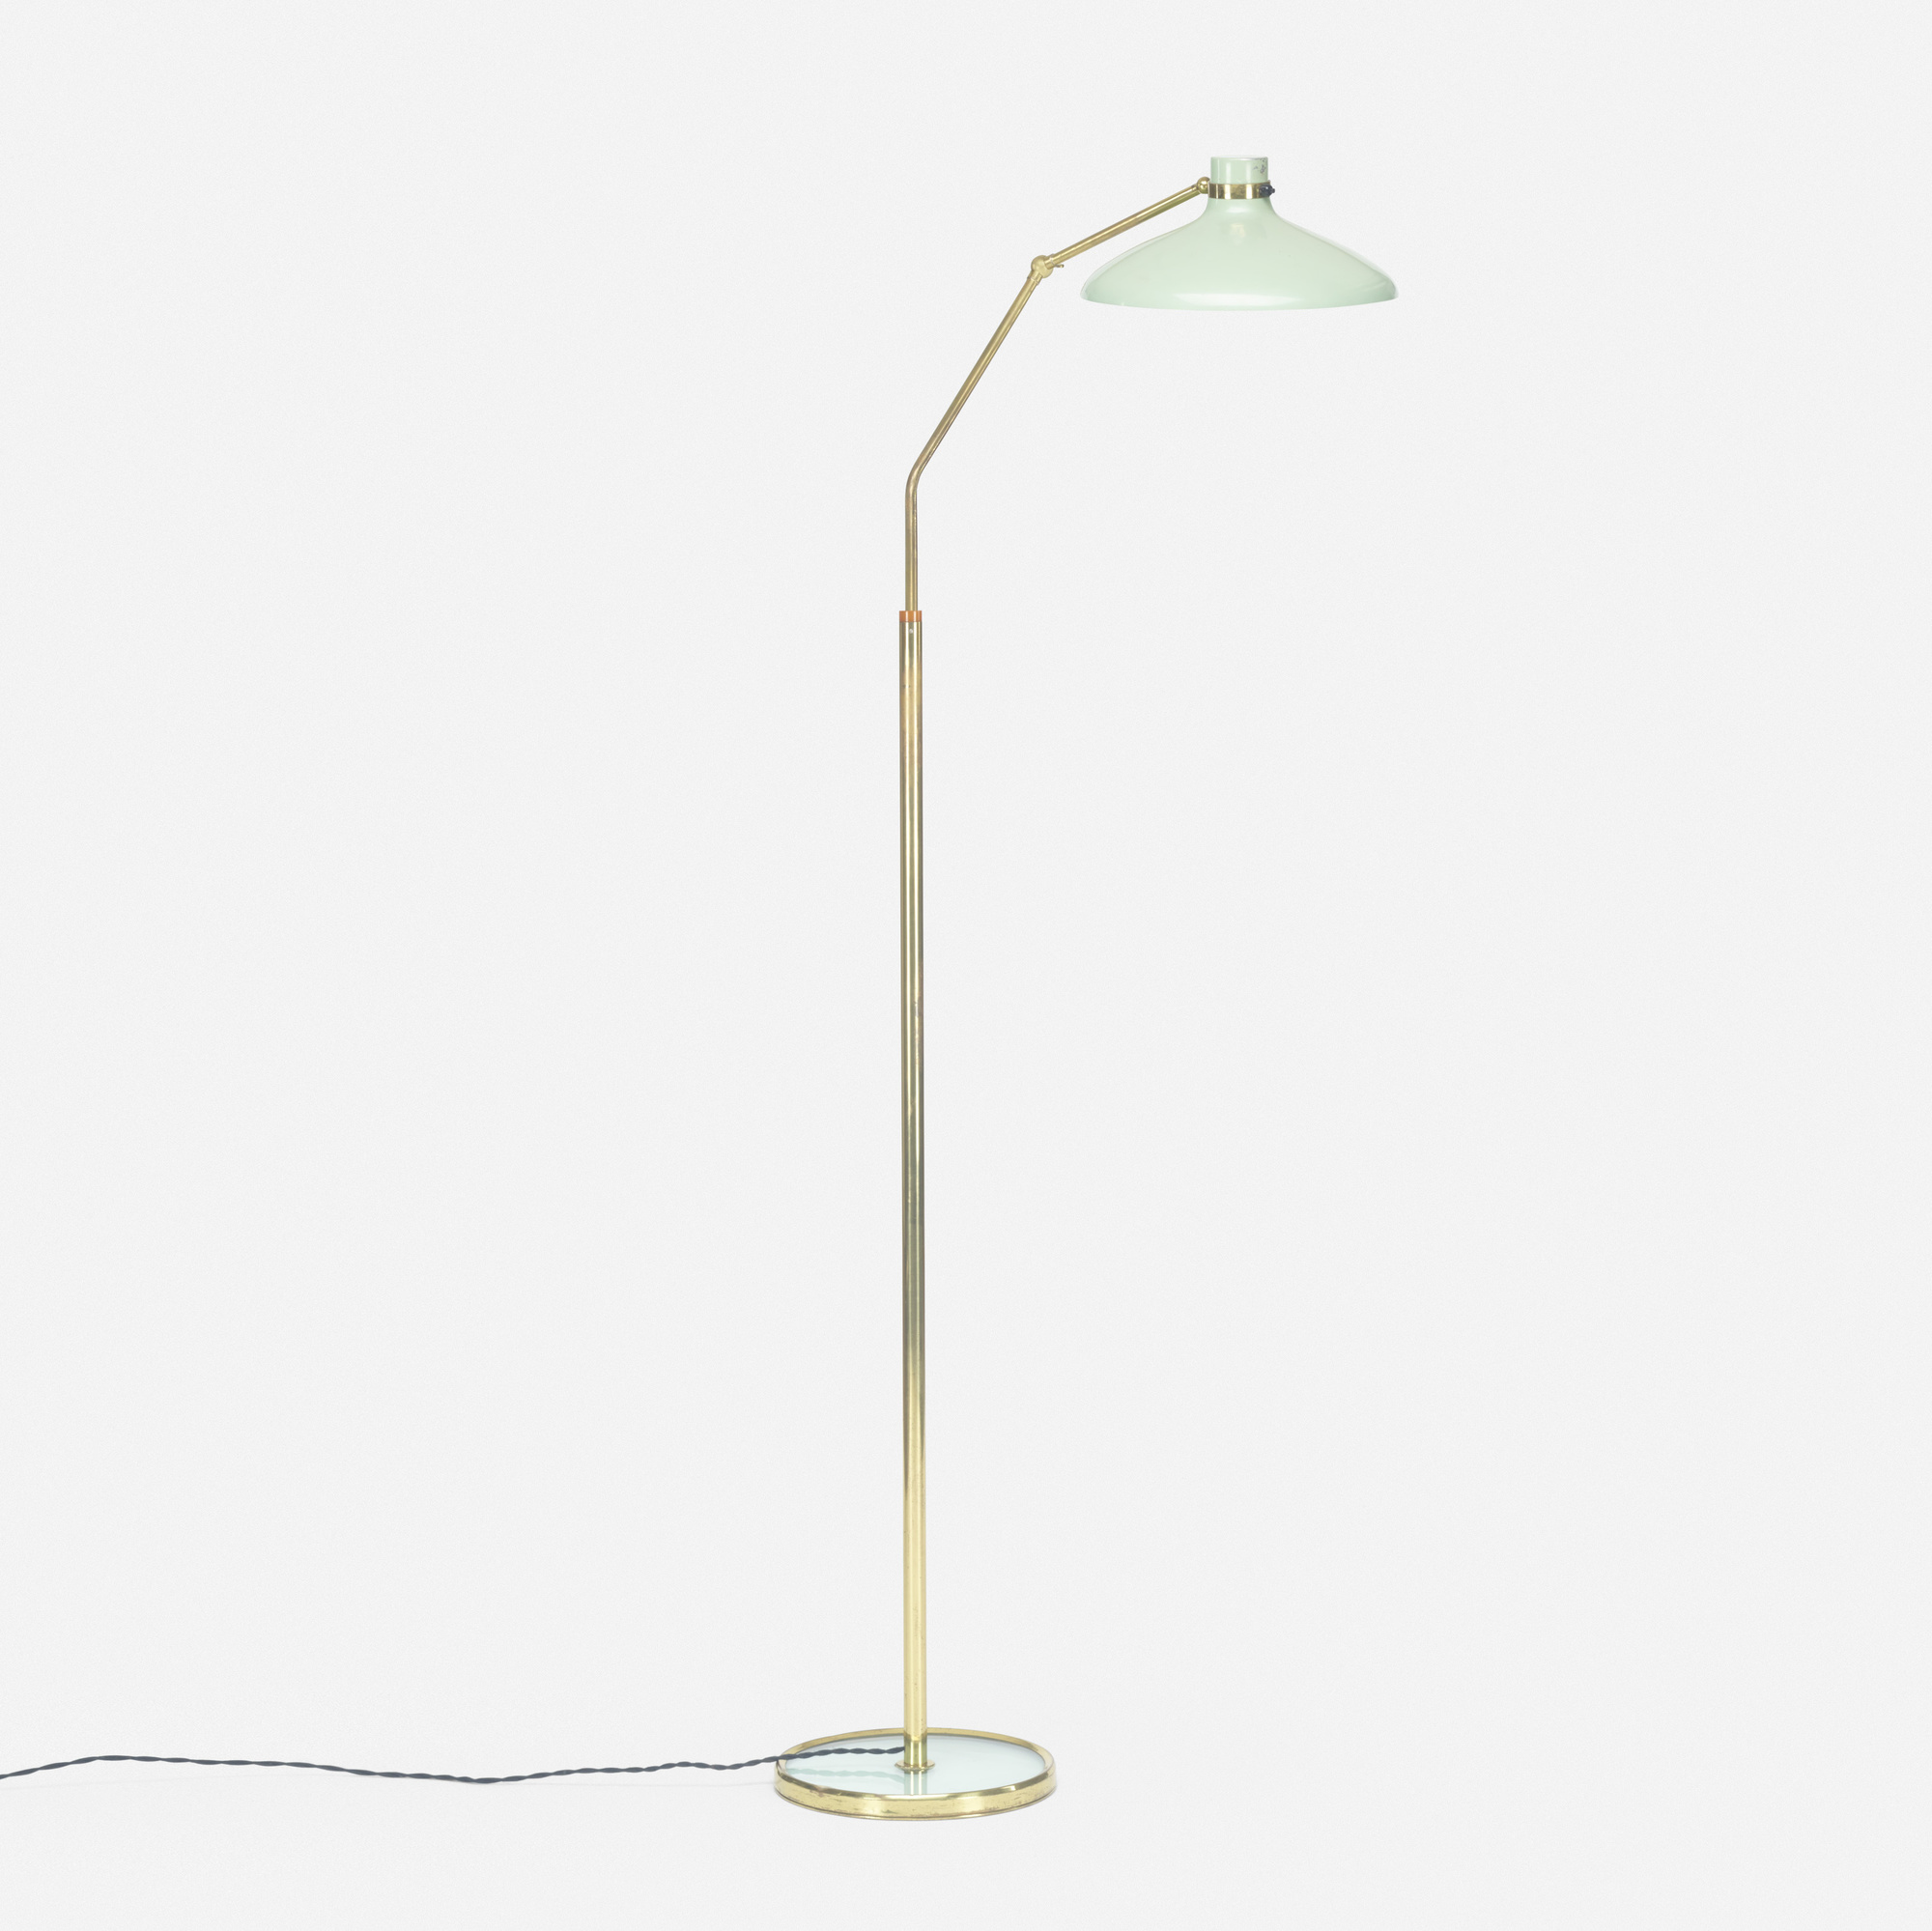 264: Gio Ponti / floor lamp from the Hotel Parco dei Principi, Rome (1 of 1)